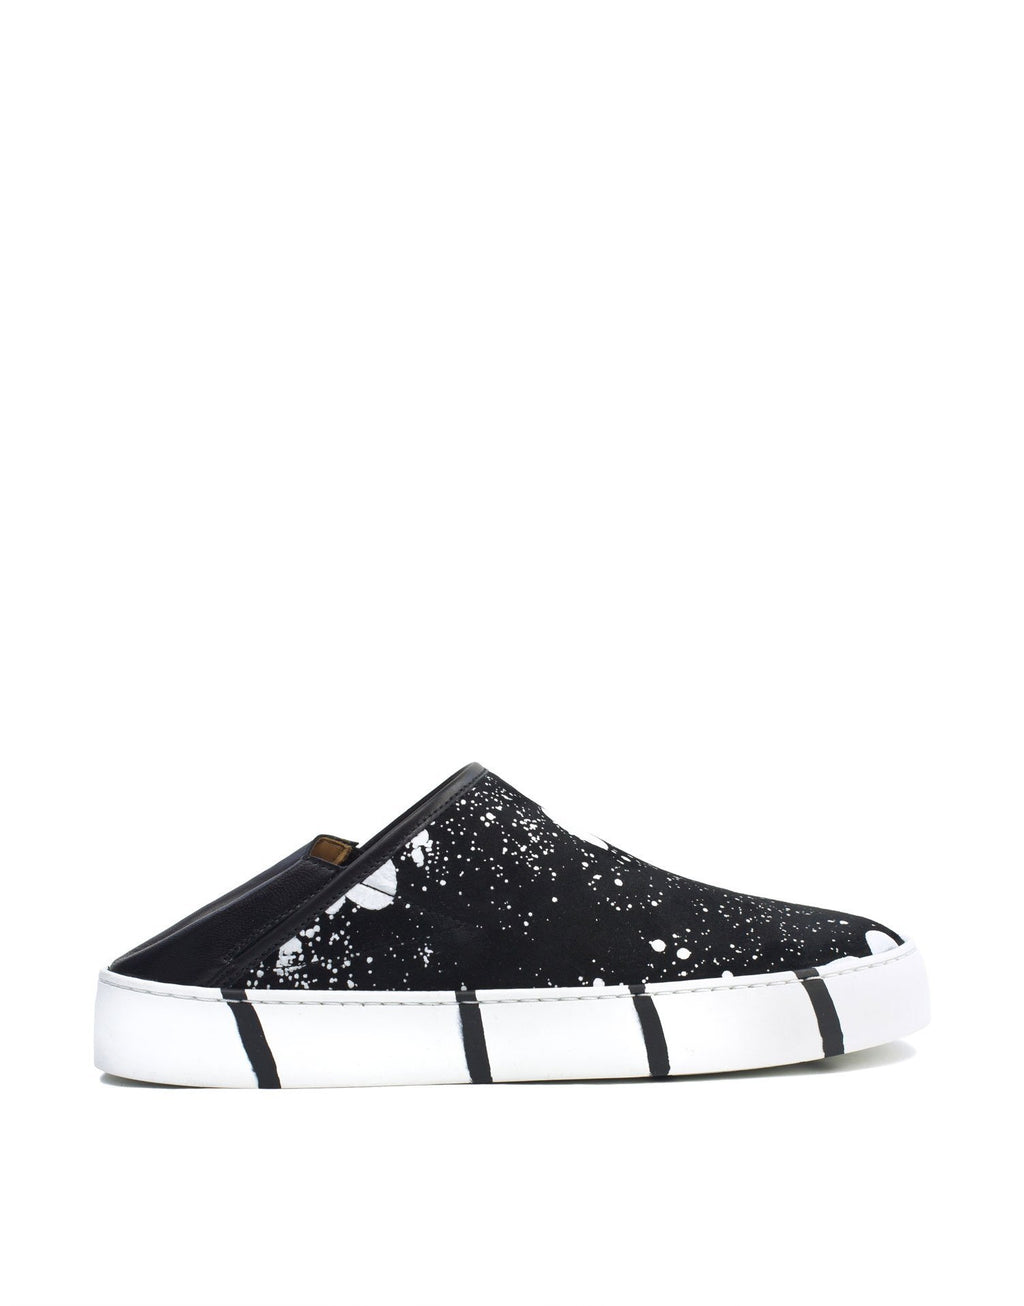 white splashed black suede slip on sneaker art to wear by Georgina Goodman